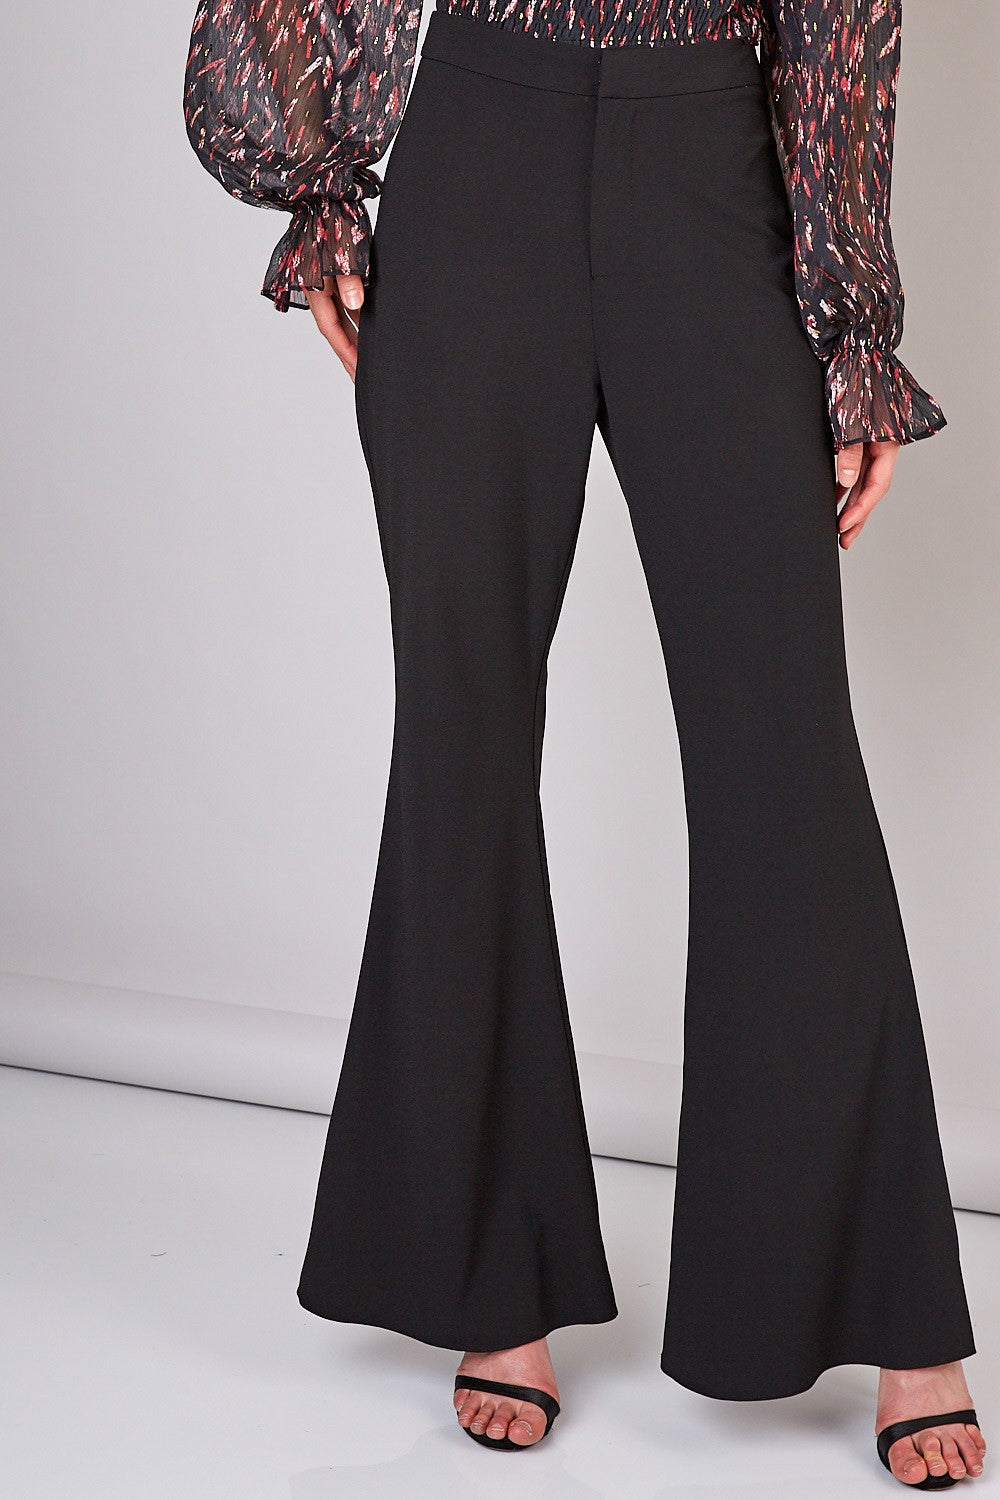 Business or Pleasure Black Flared Pants